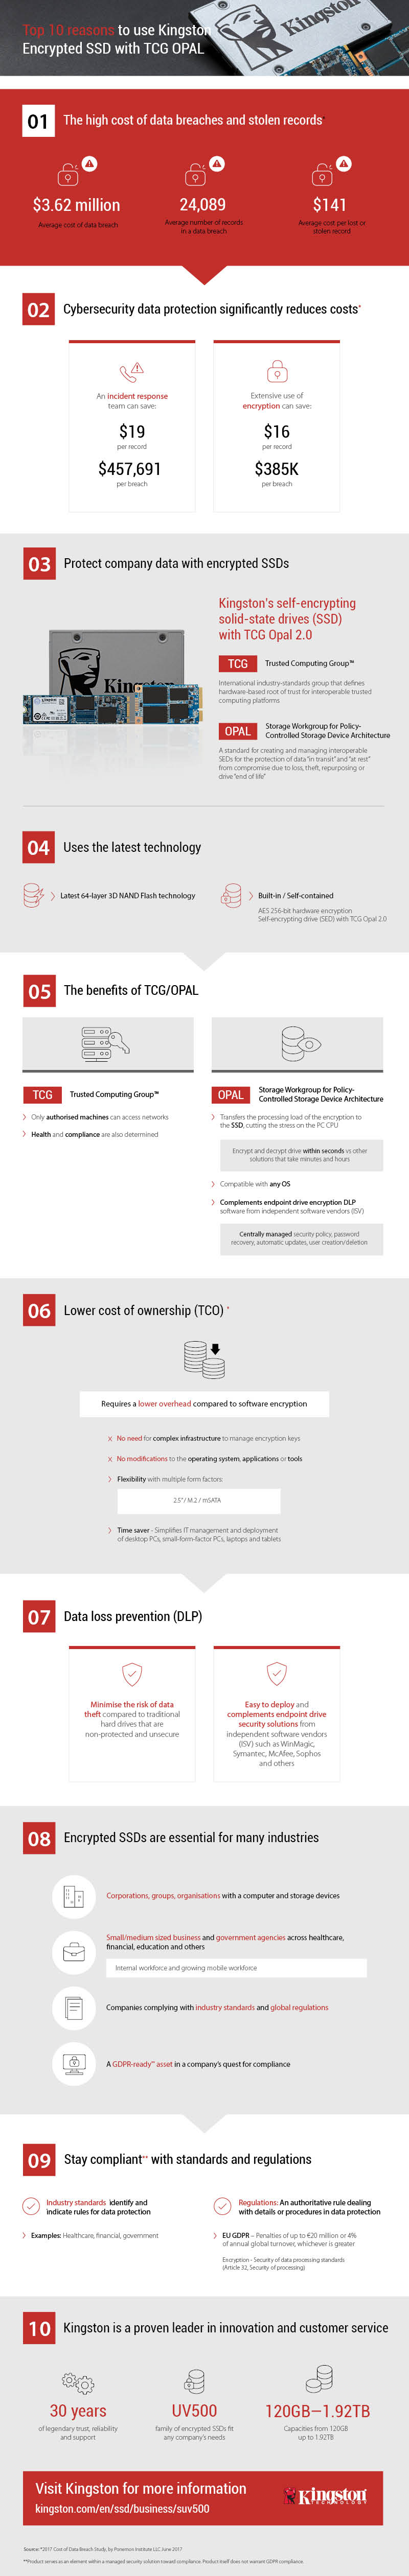 This infographic explains why companies need to use Self-Encrypting Drives (SED). It also explains TCG Opal 2.0 and AES 256-bit Hardware Encryption and what the benefits are for a company and its department's data protection best practices